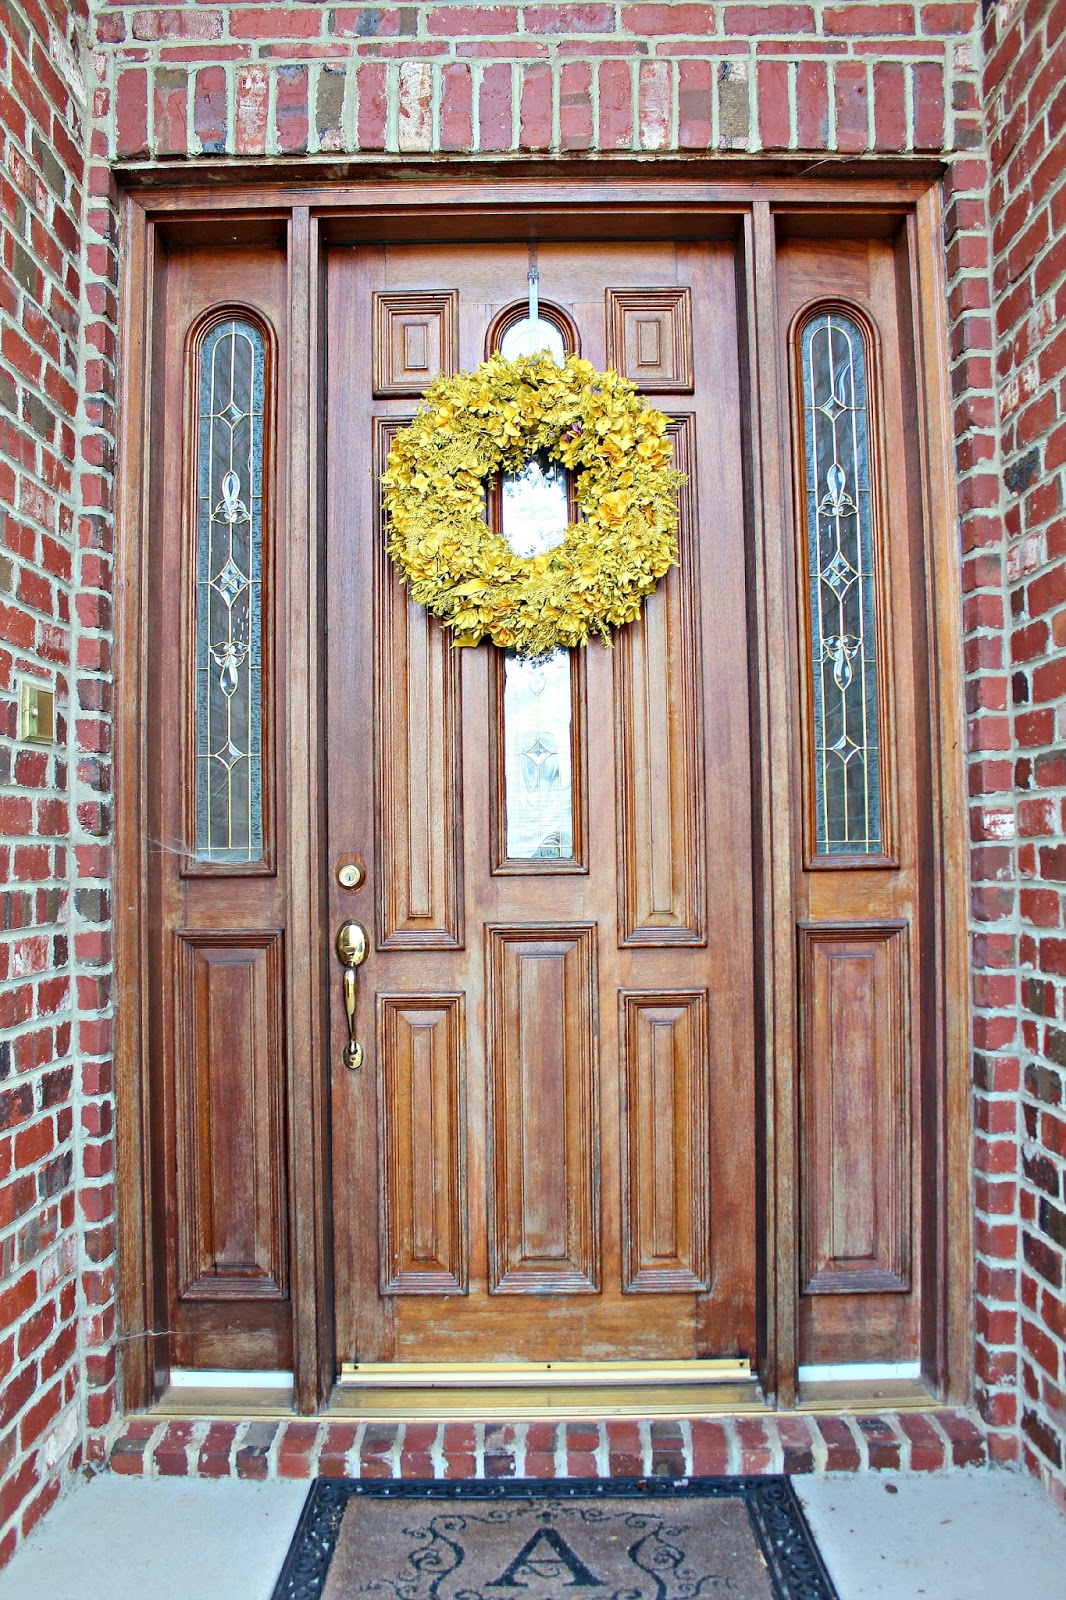 In August, We Stained The Inside And Outside Of Our Front Door. Although It  Is 15 Years Old, Our Door Is Beautiful, Solid Wood, And 10 Feet Tall: